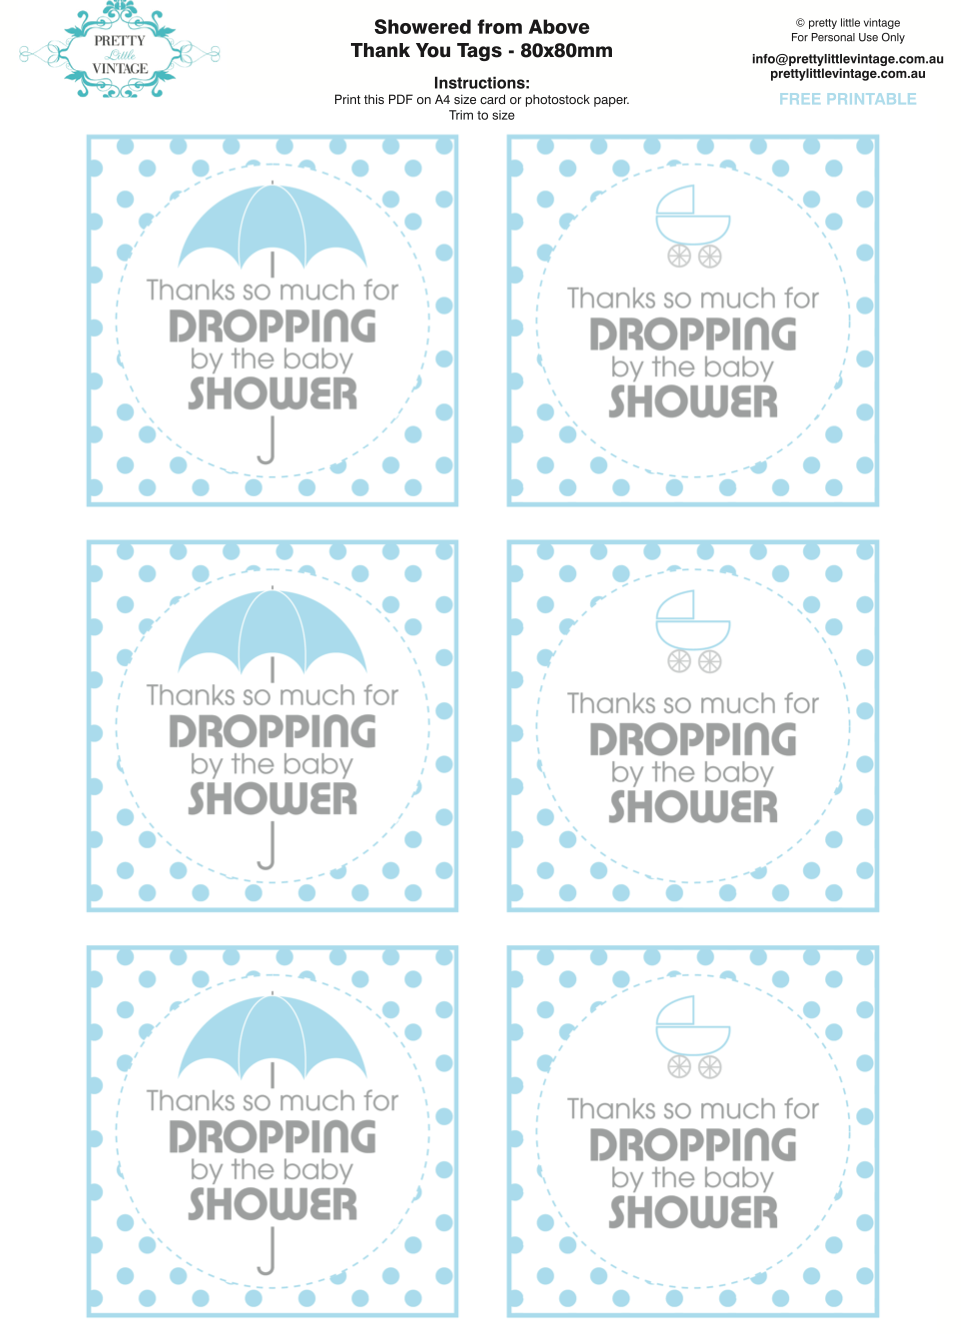 picture regarding Free Printable Baby Shower Thank You Tags identified as Showered Against In excess of Rain Boy Kid Shower Printables Creating